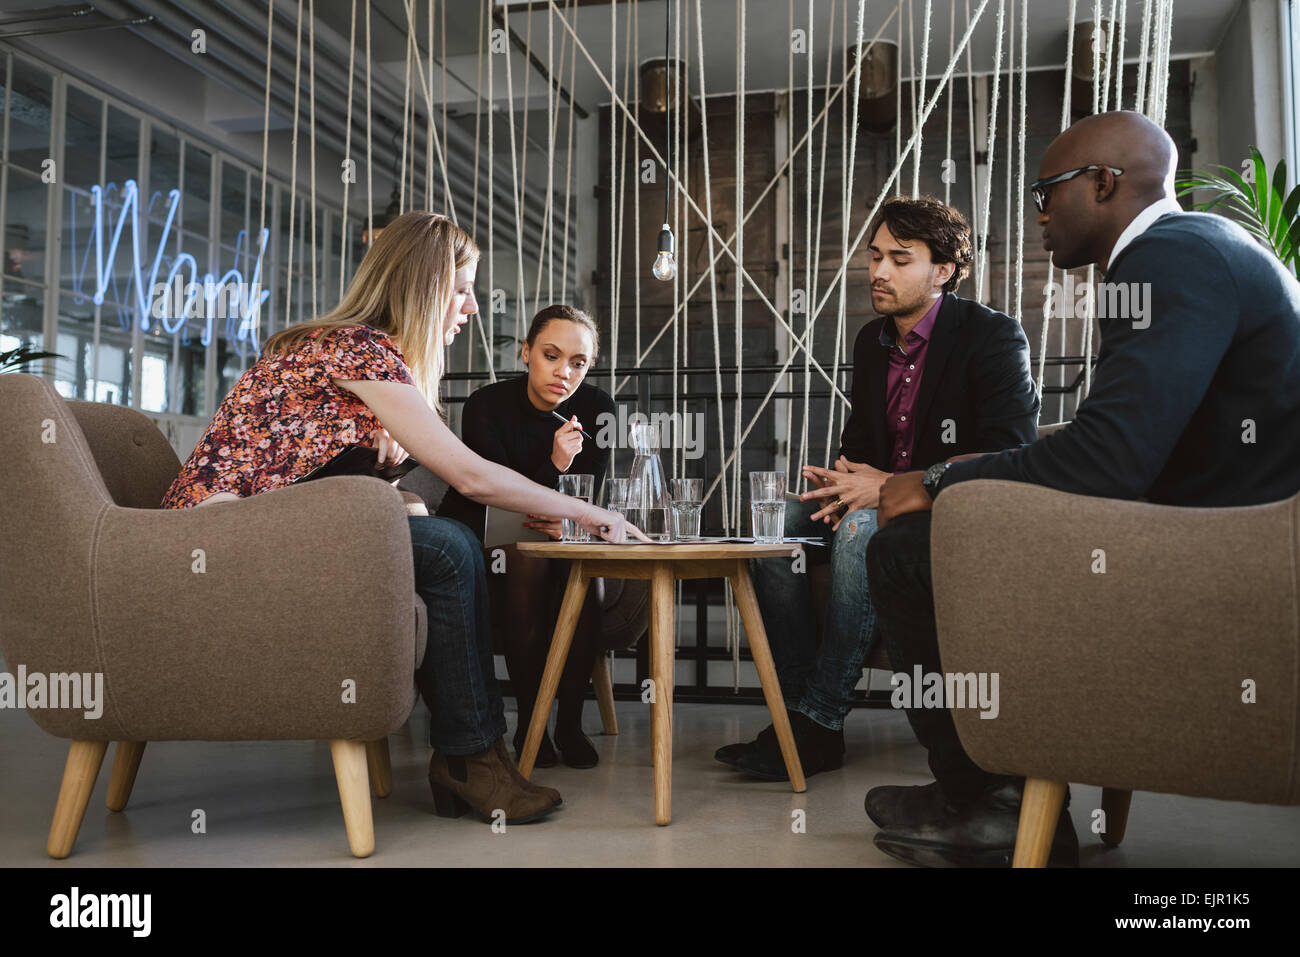 Diverse group of executives meeting in office sharing creative ideas. Young people having a meeting in lobby. - Stock Image